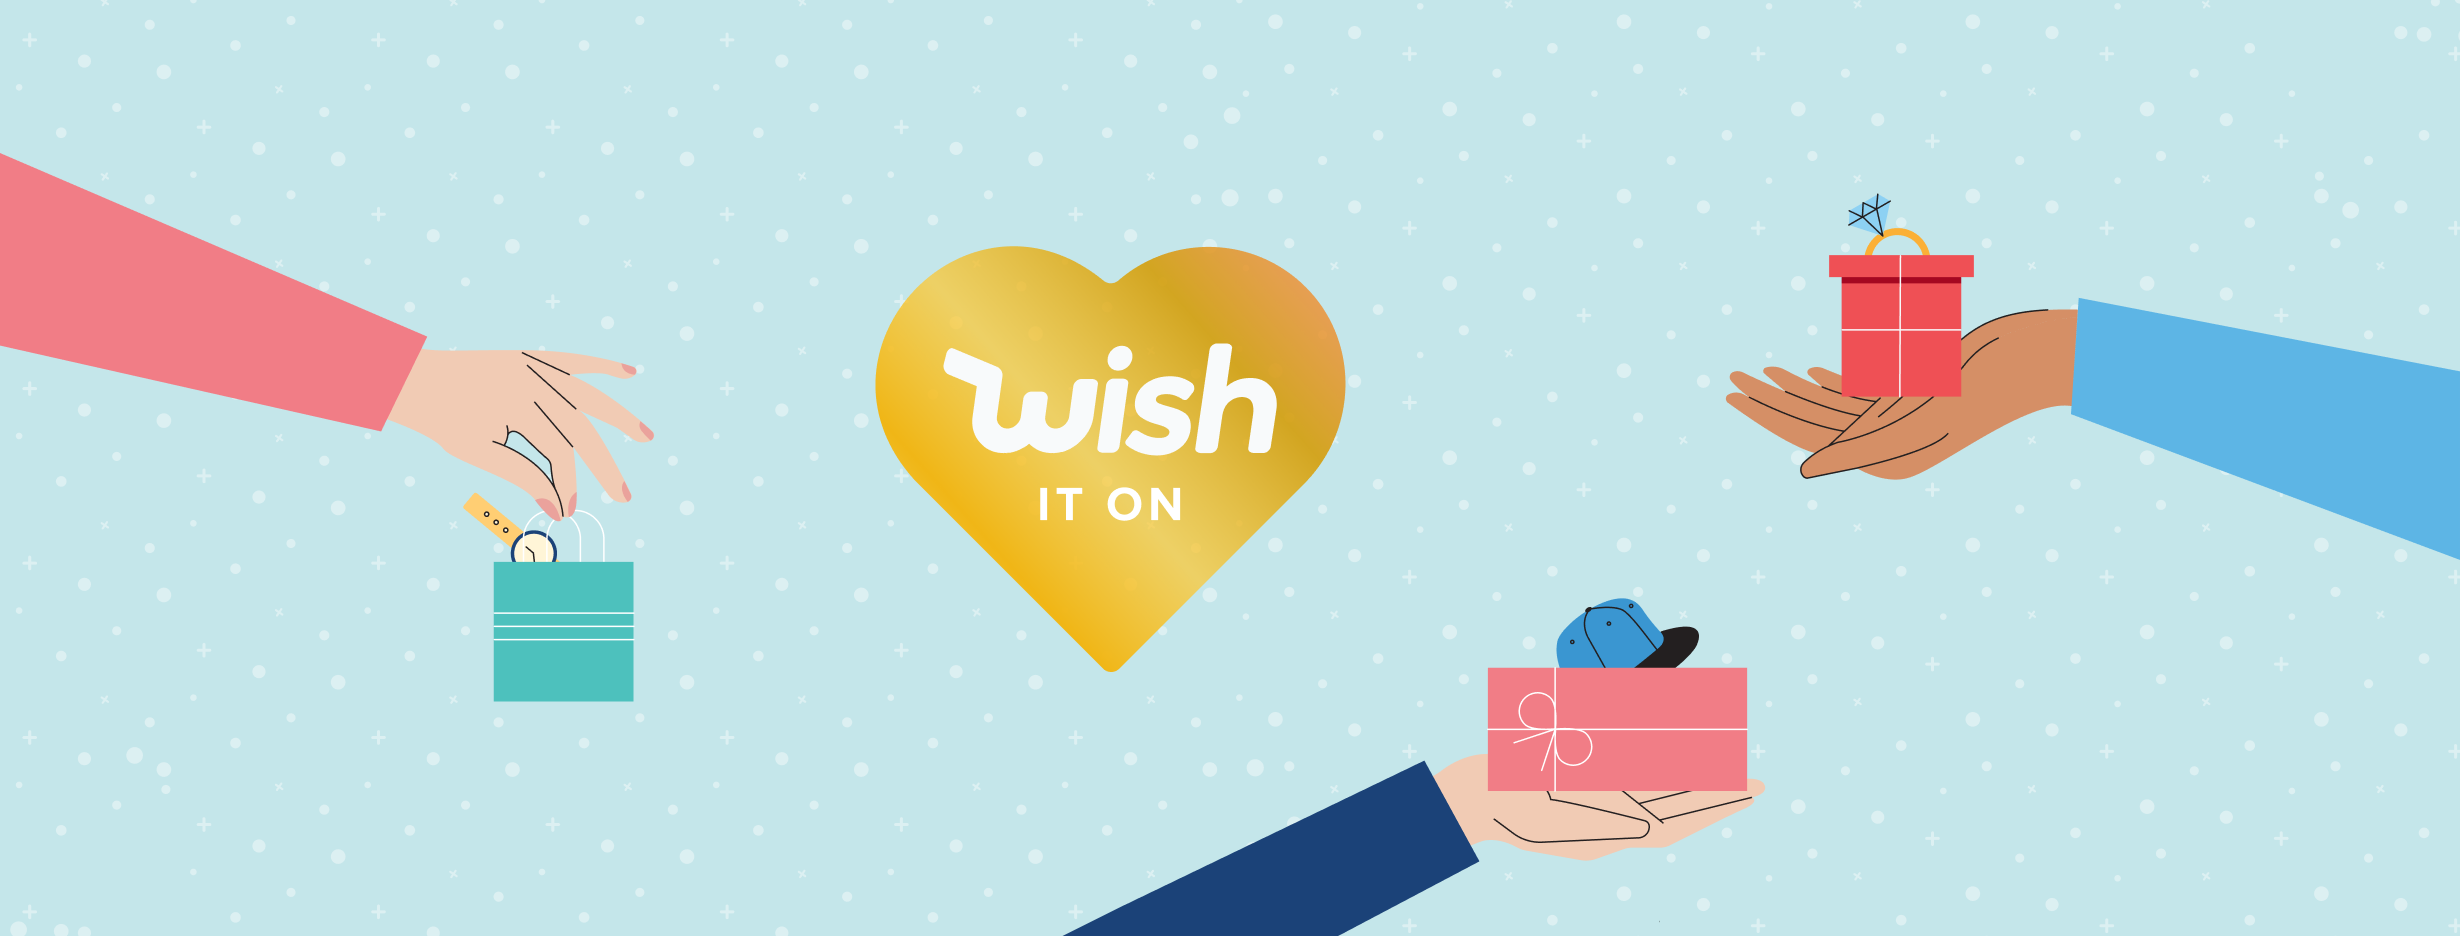 Wish receive up to $140 when you refer friends